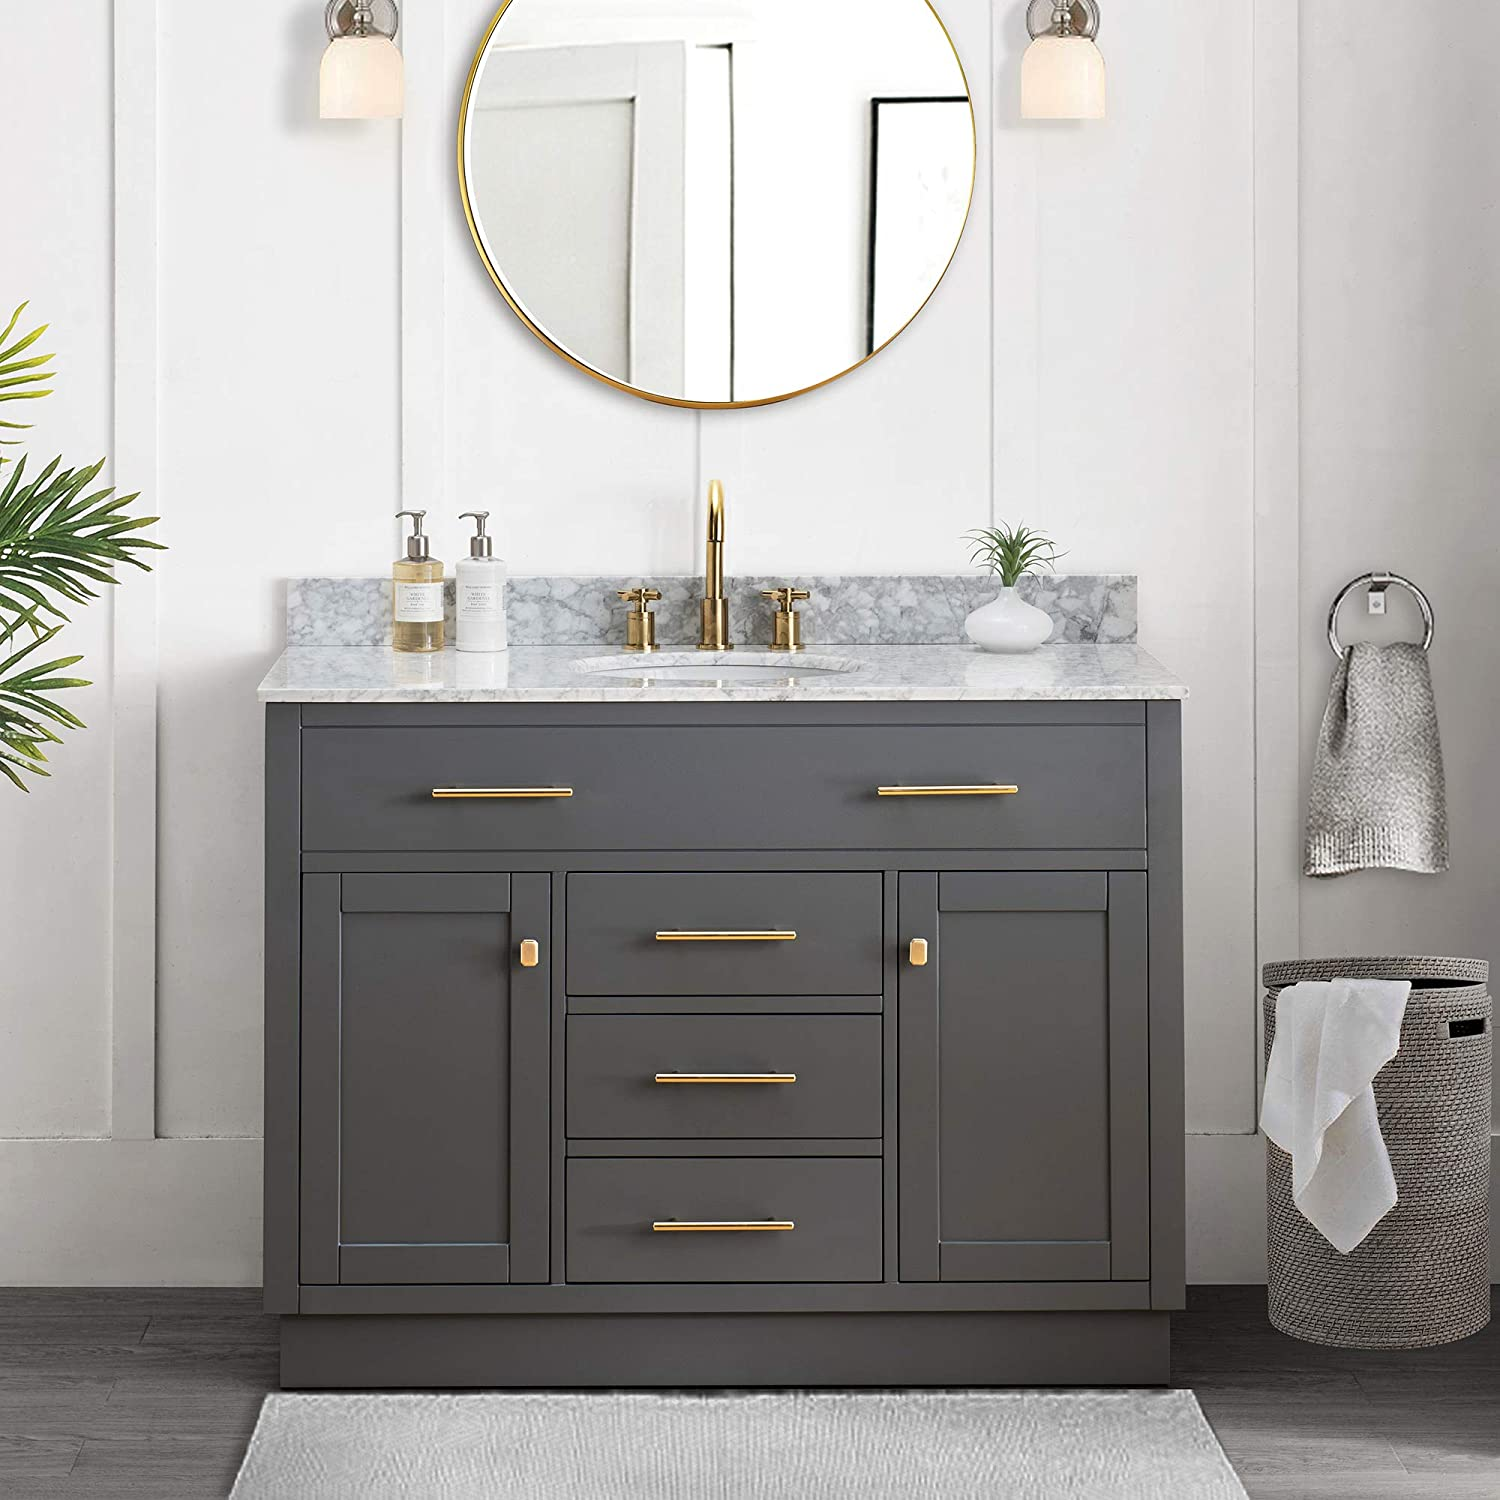 Amazon Com Sj Collection Defoe 48 In Shaker Style Single Sink Bathroom Vanity Blue Gray Home Kitchen